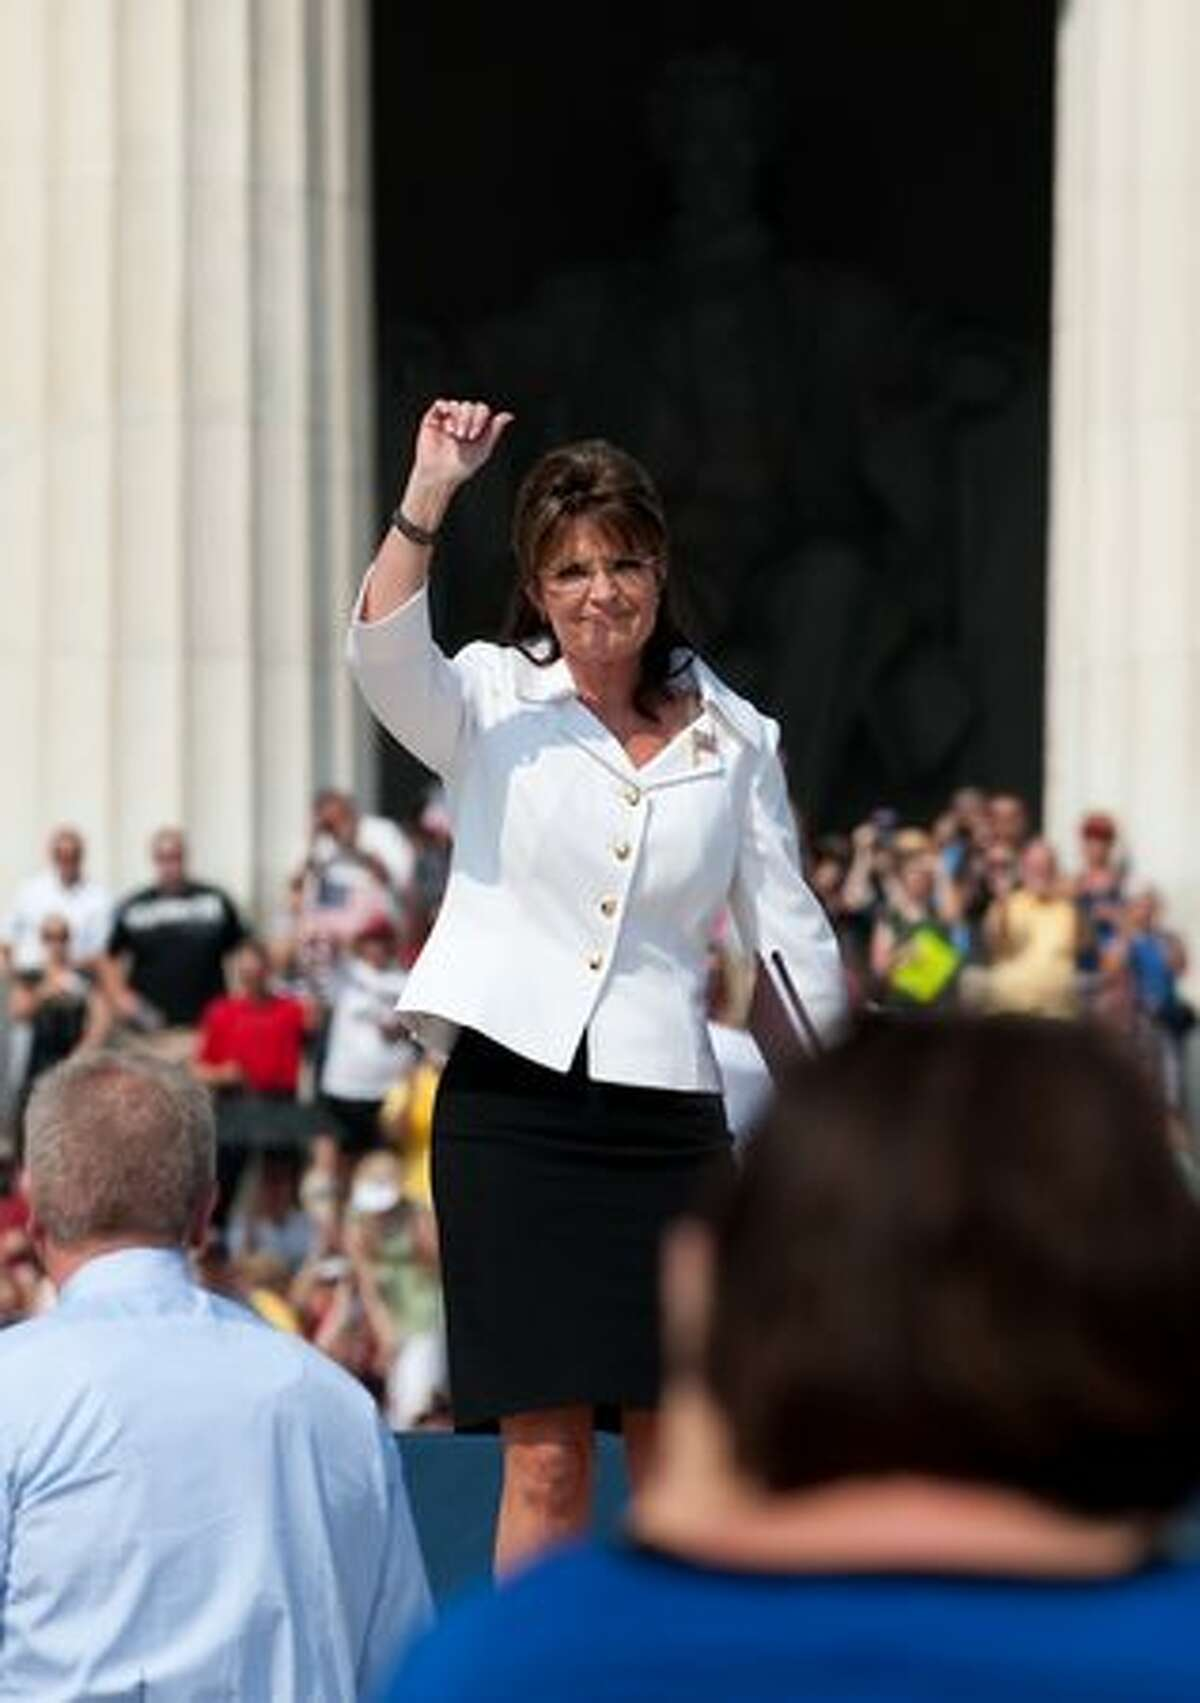 Former Alaska governor Sarah Palin arrives to speak at a rally dubbed